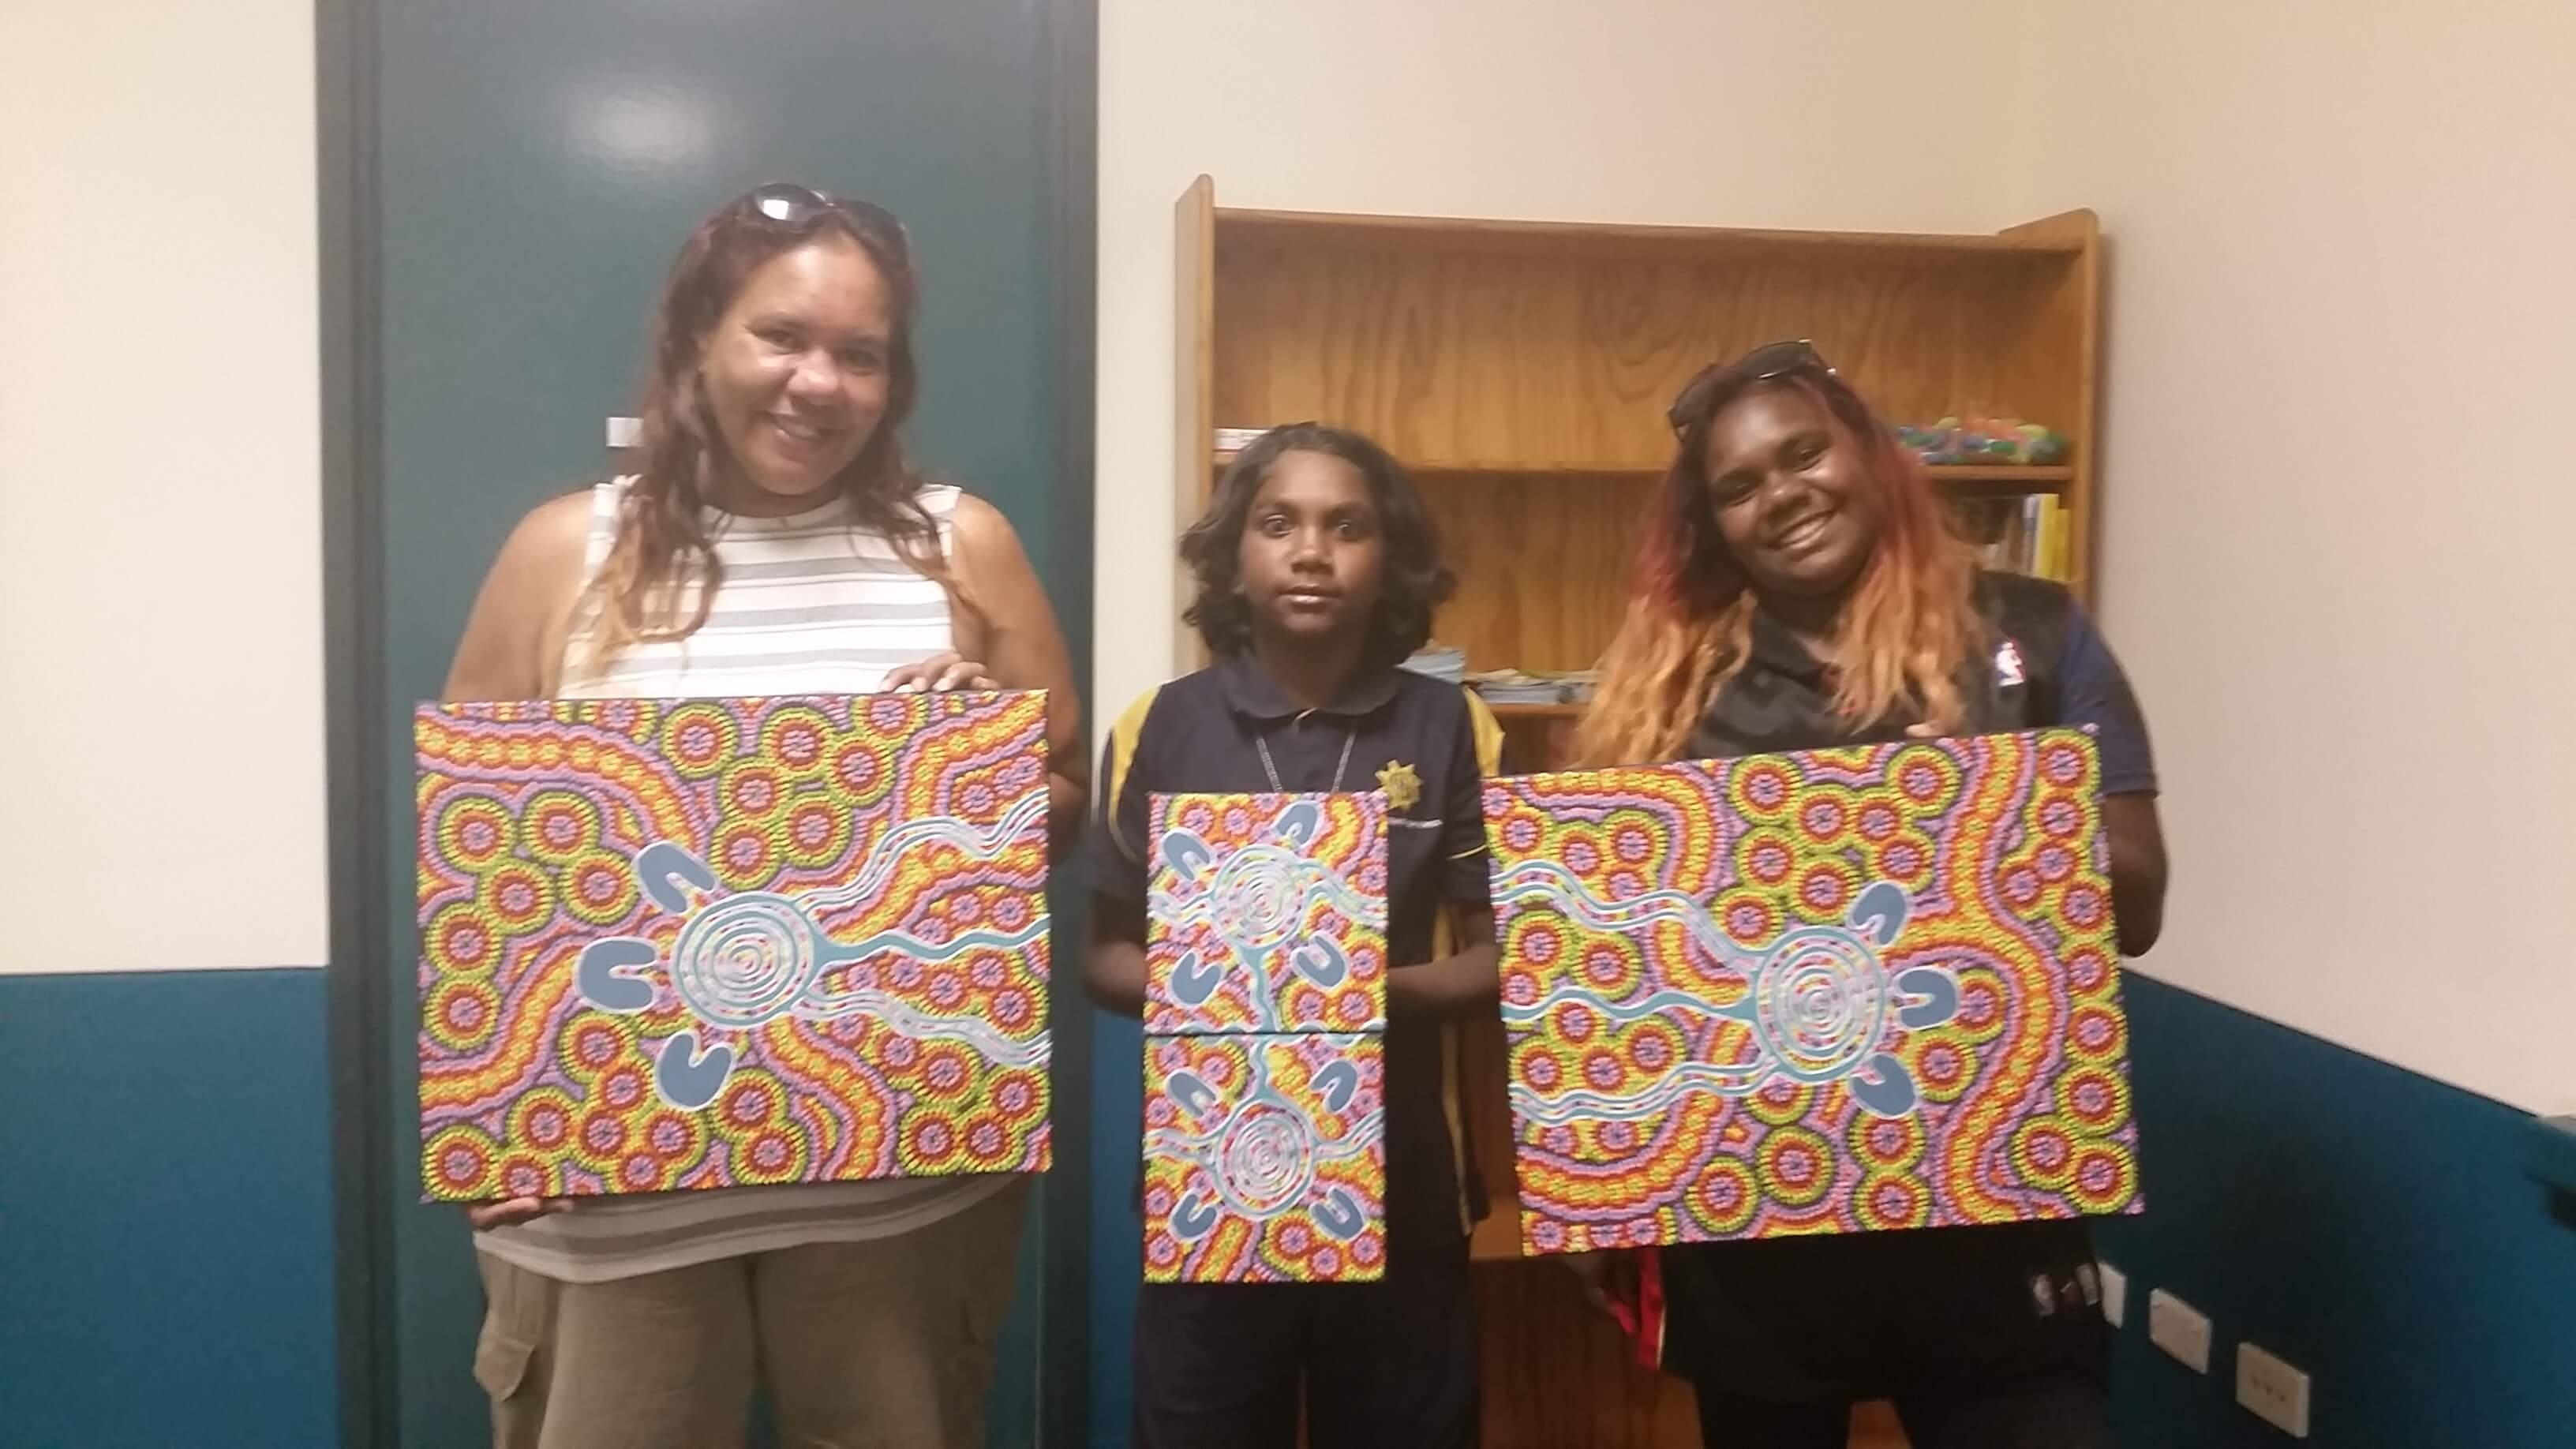 South Hedland-based artists Annabella Flatt and her child creating artwork for HelpingMinds<sup>®</sup>